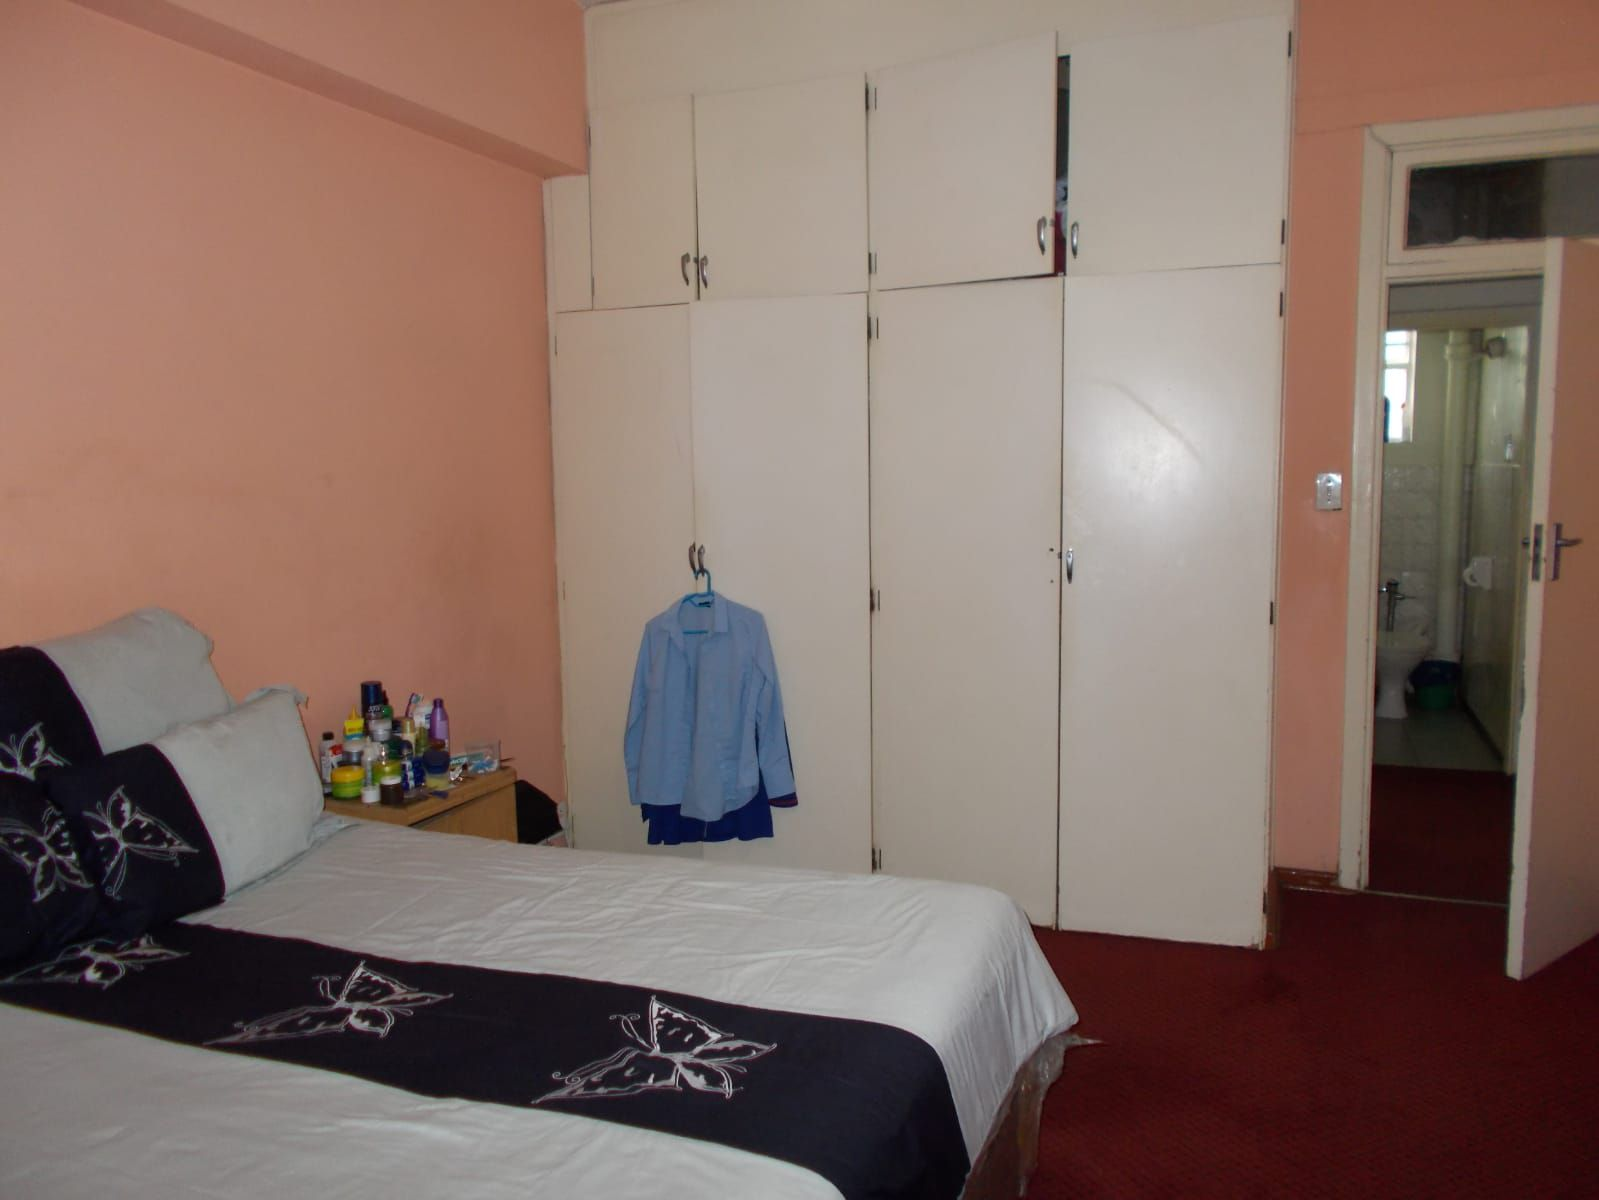 Apartment in Hillbrow - WhatsApp Image 2021-01-12 at 13.04.40.jpeg